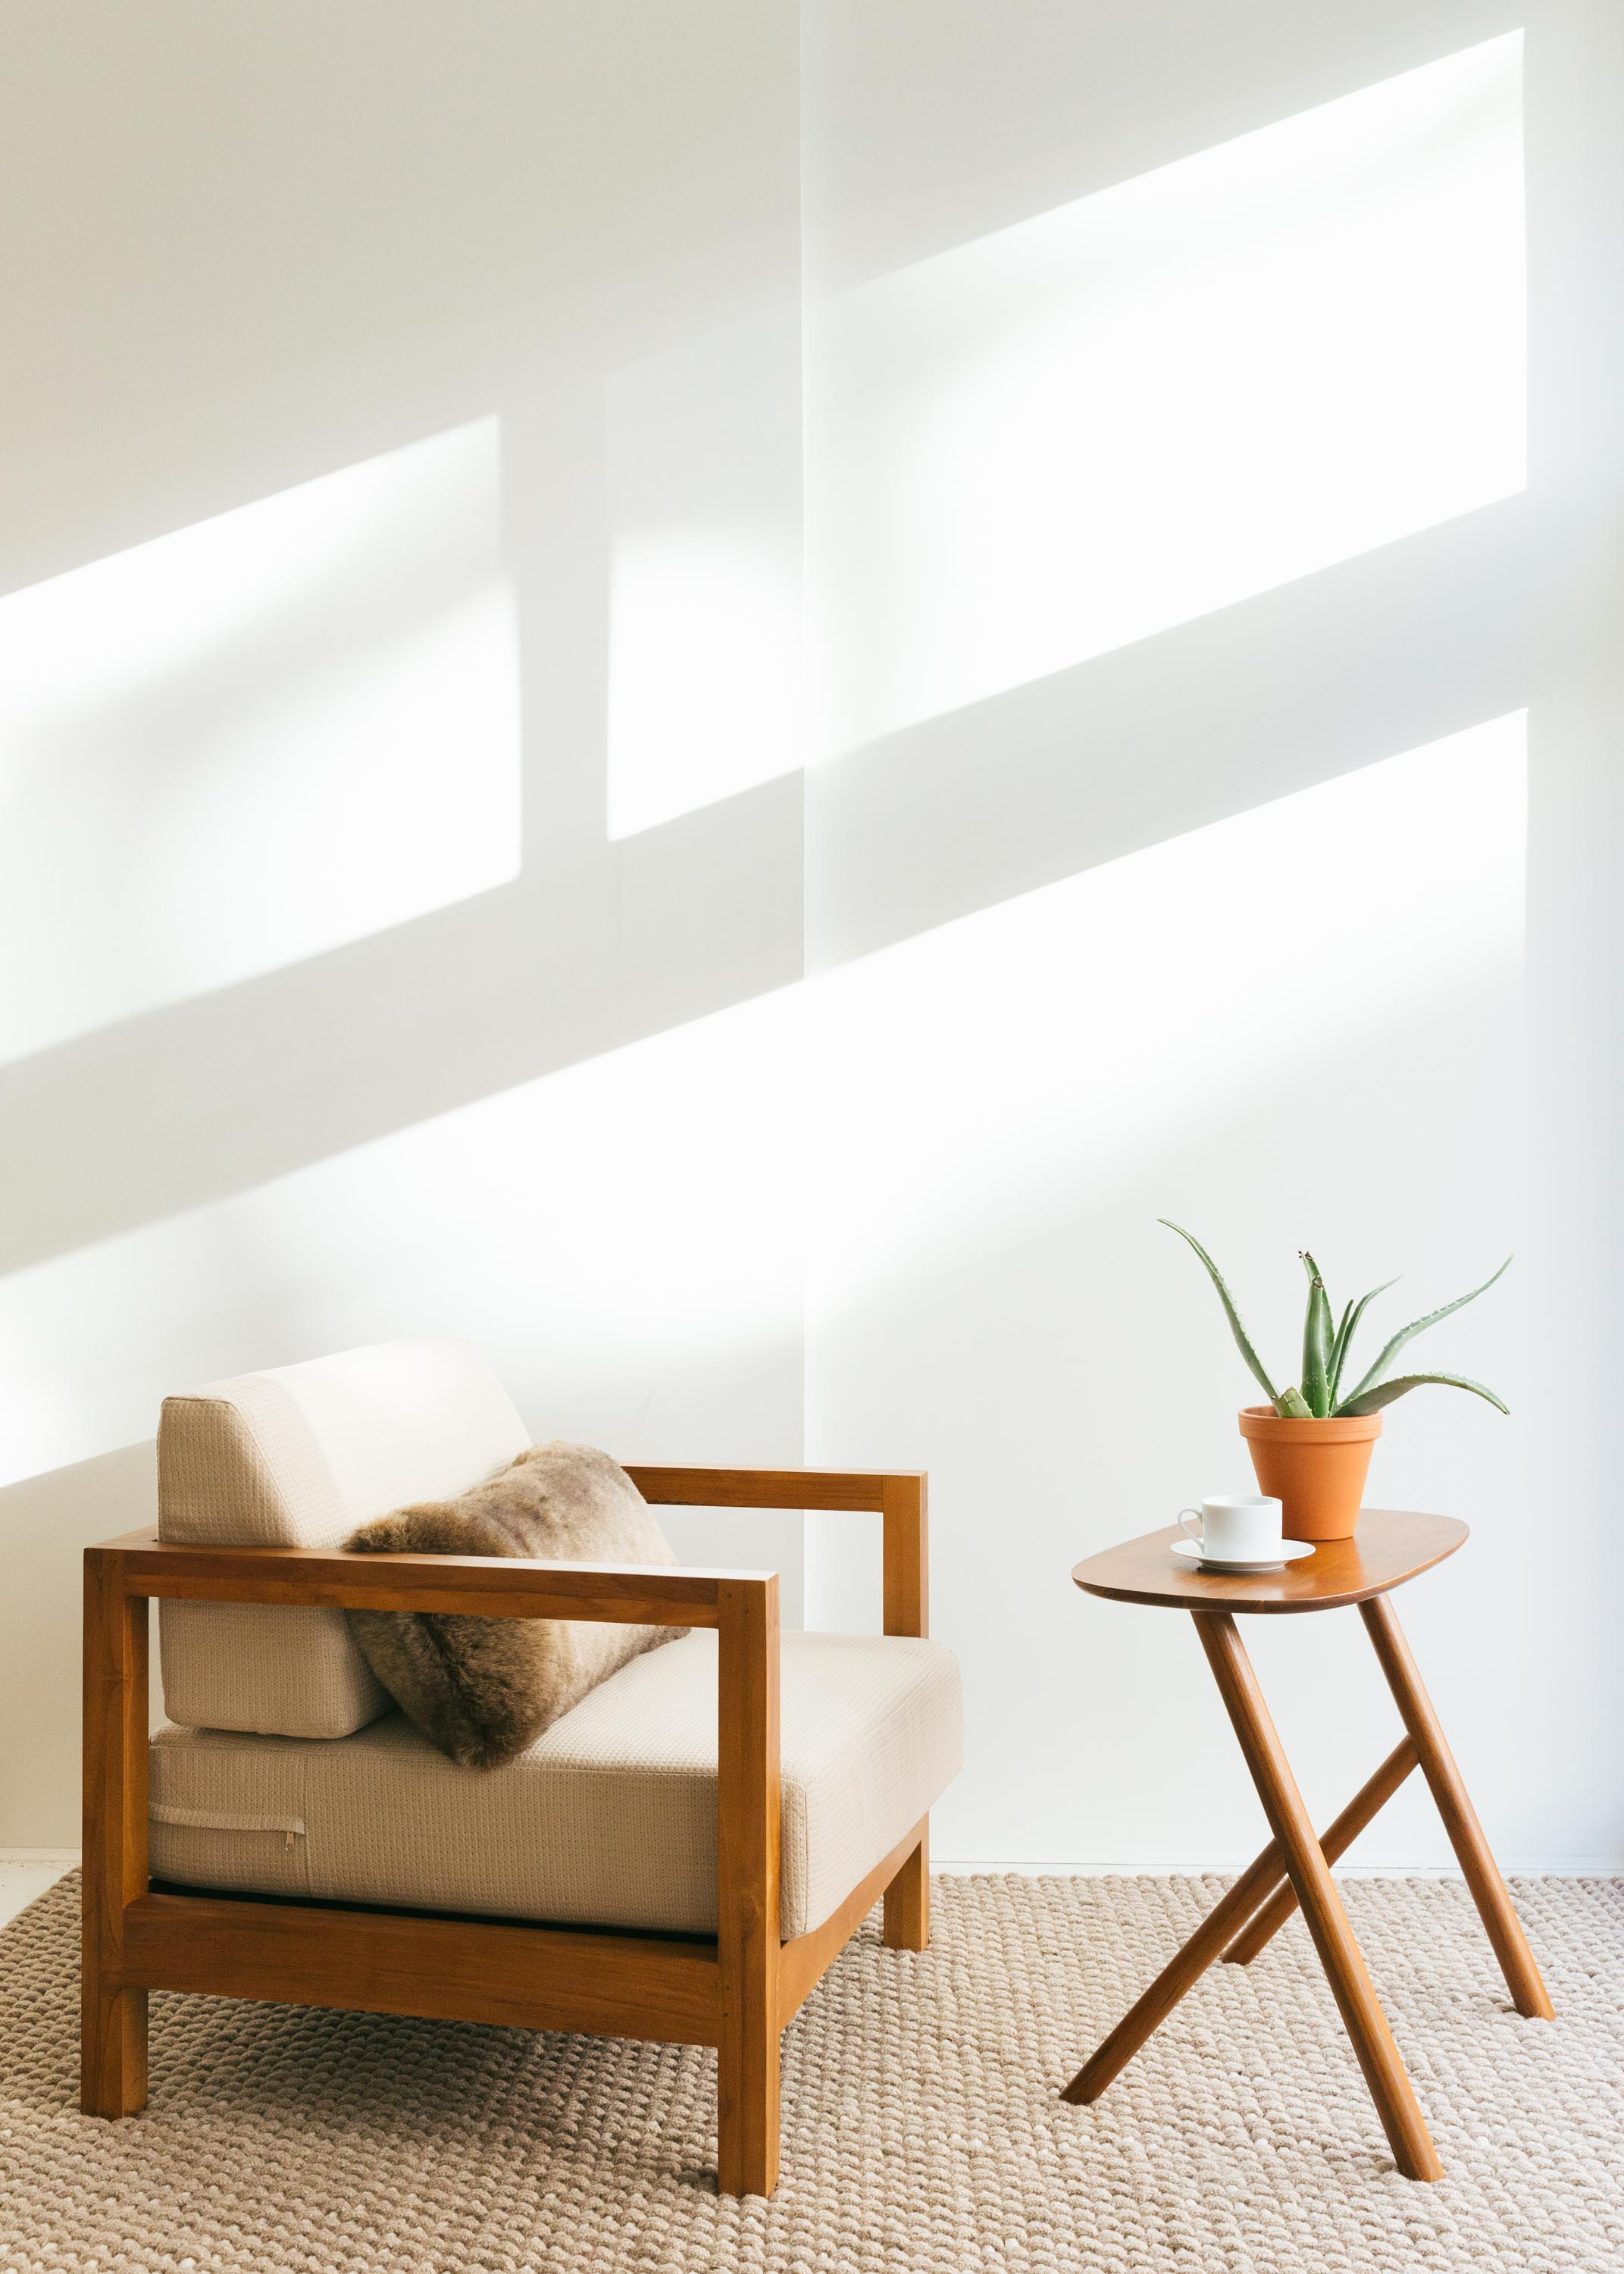 scanteak_vancouver_interior_photographer.jpg